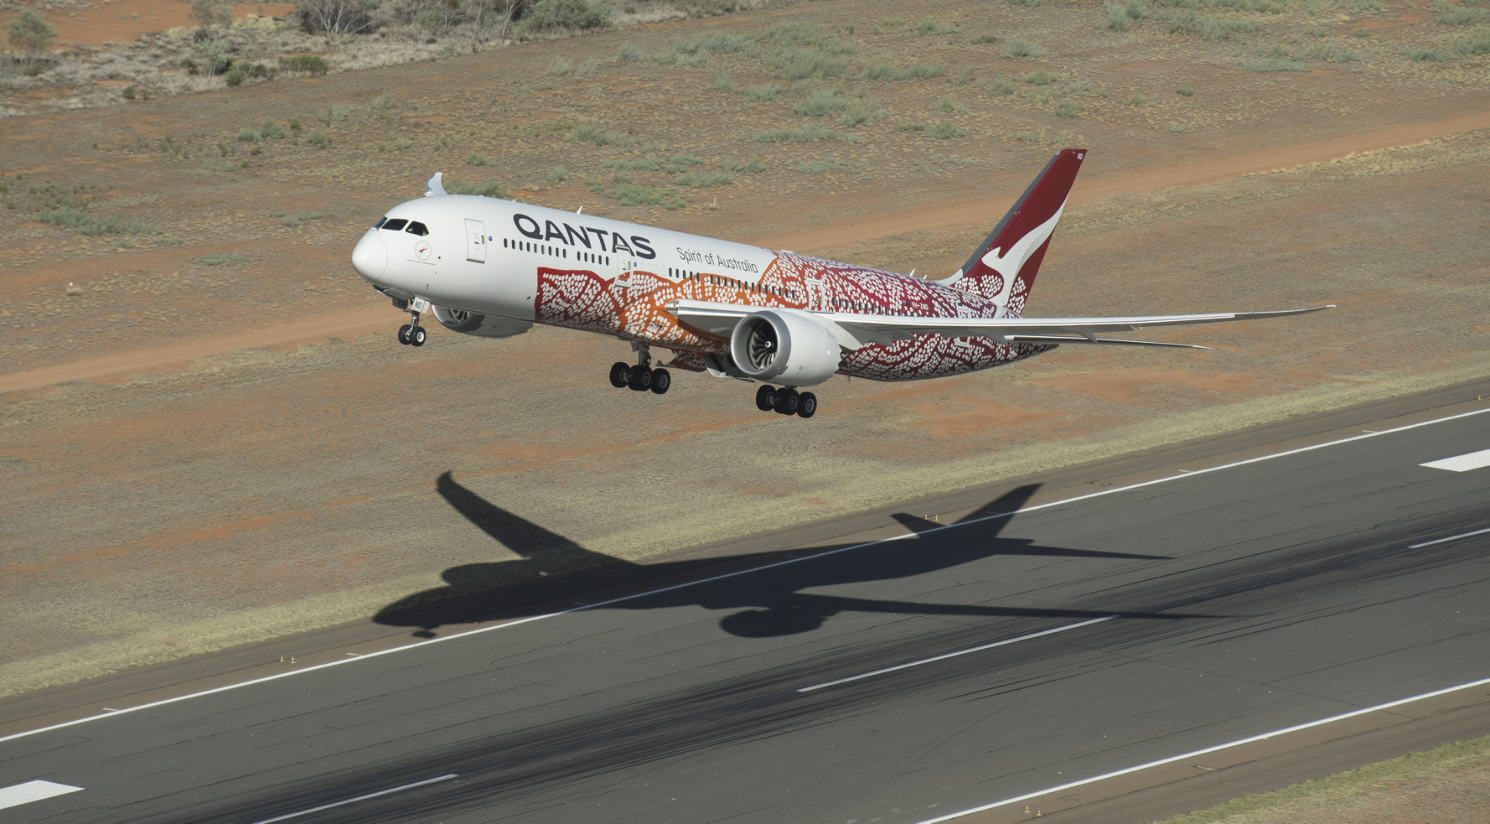 Qantas completes first direct flight from Australia to Europe